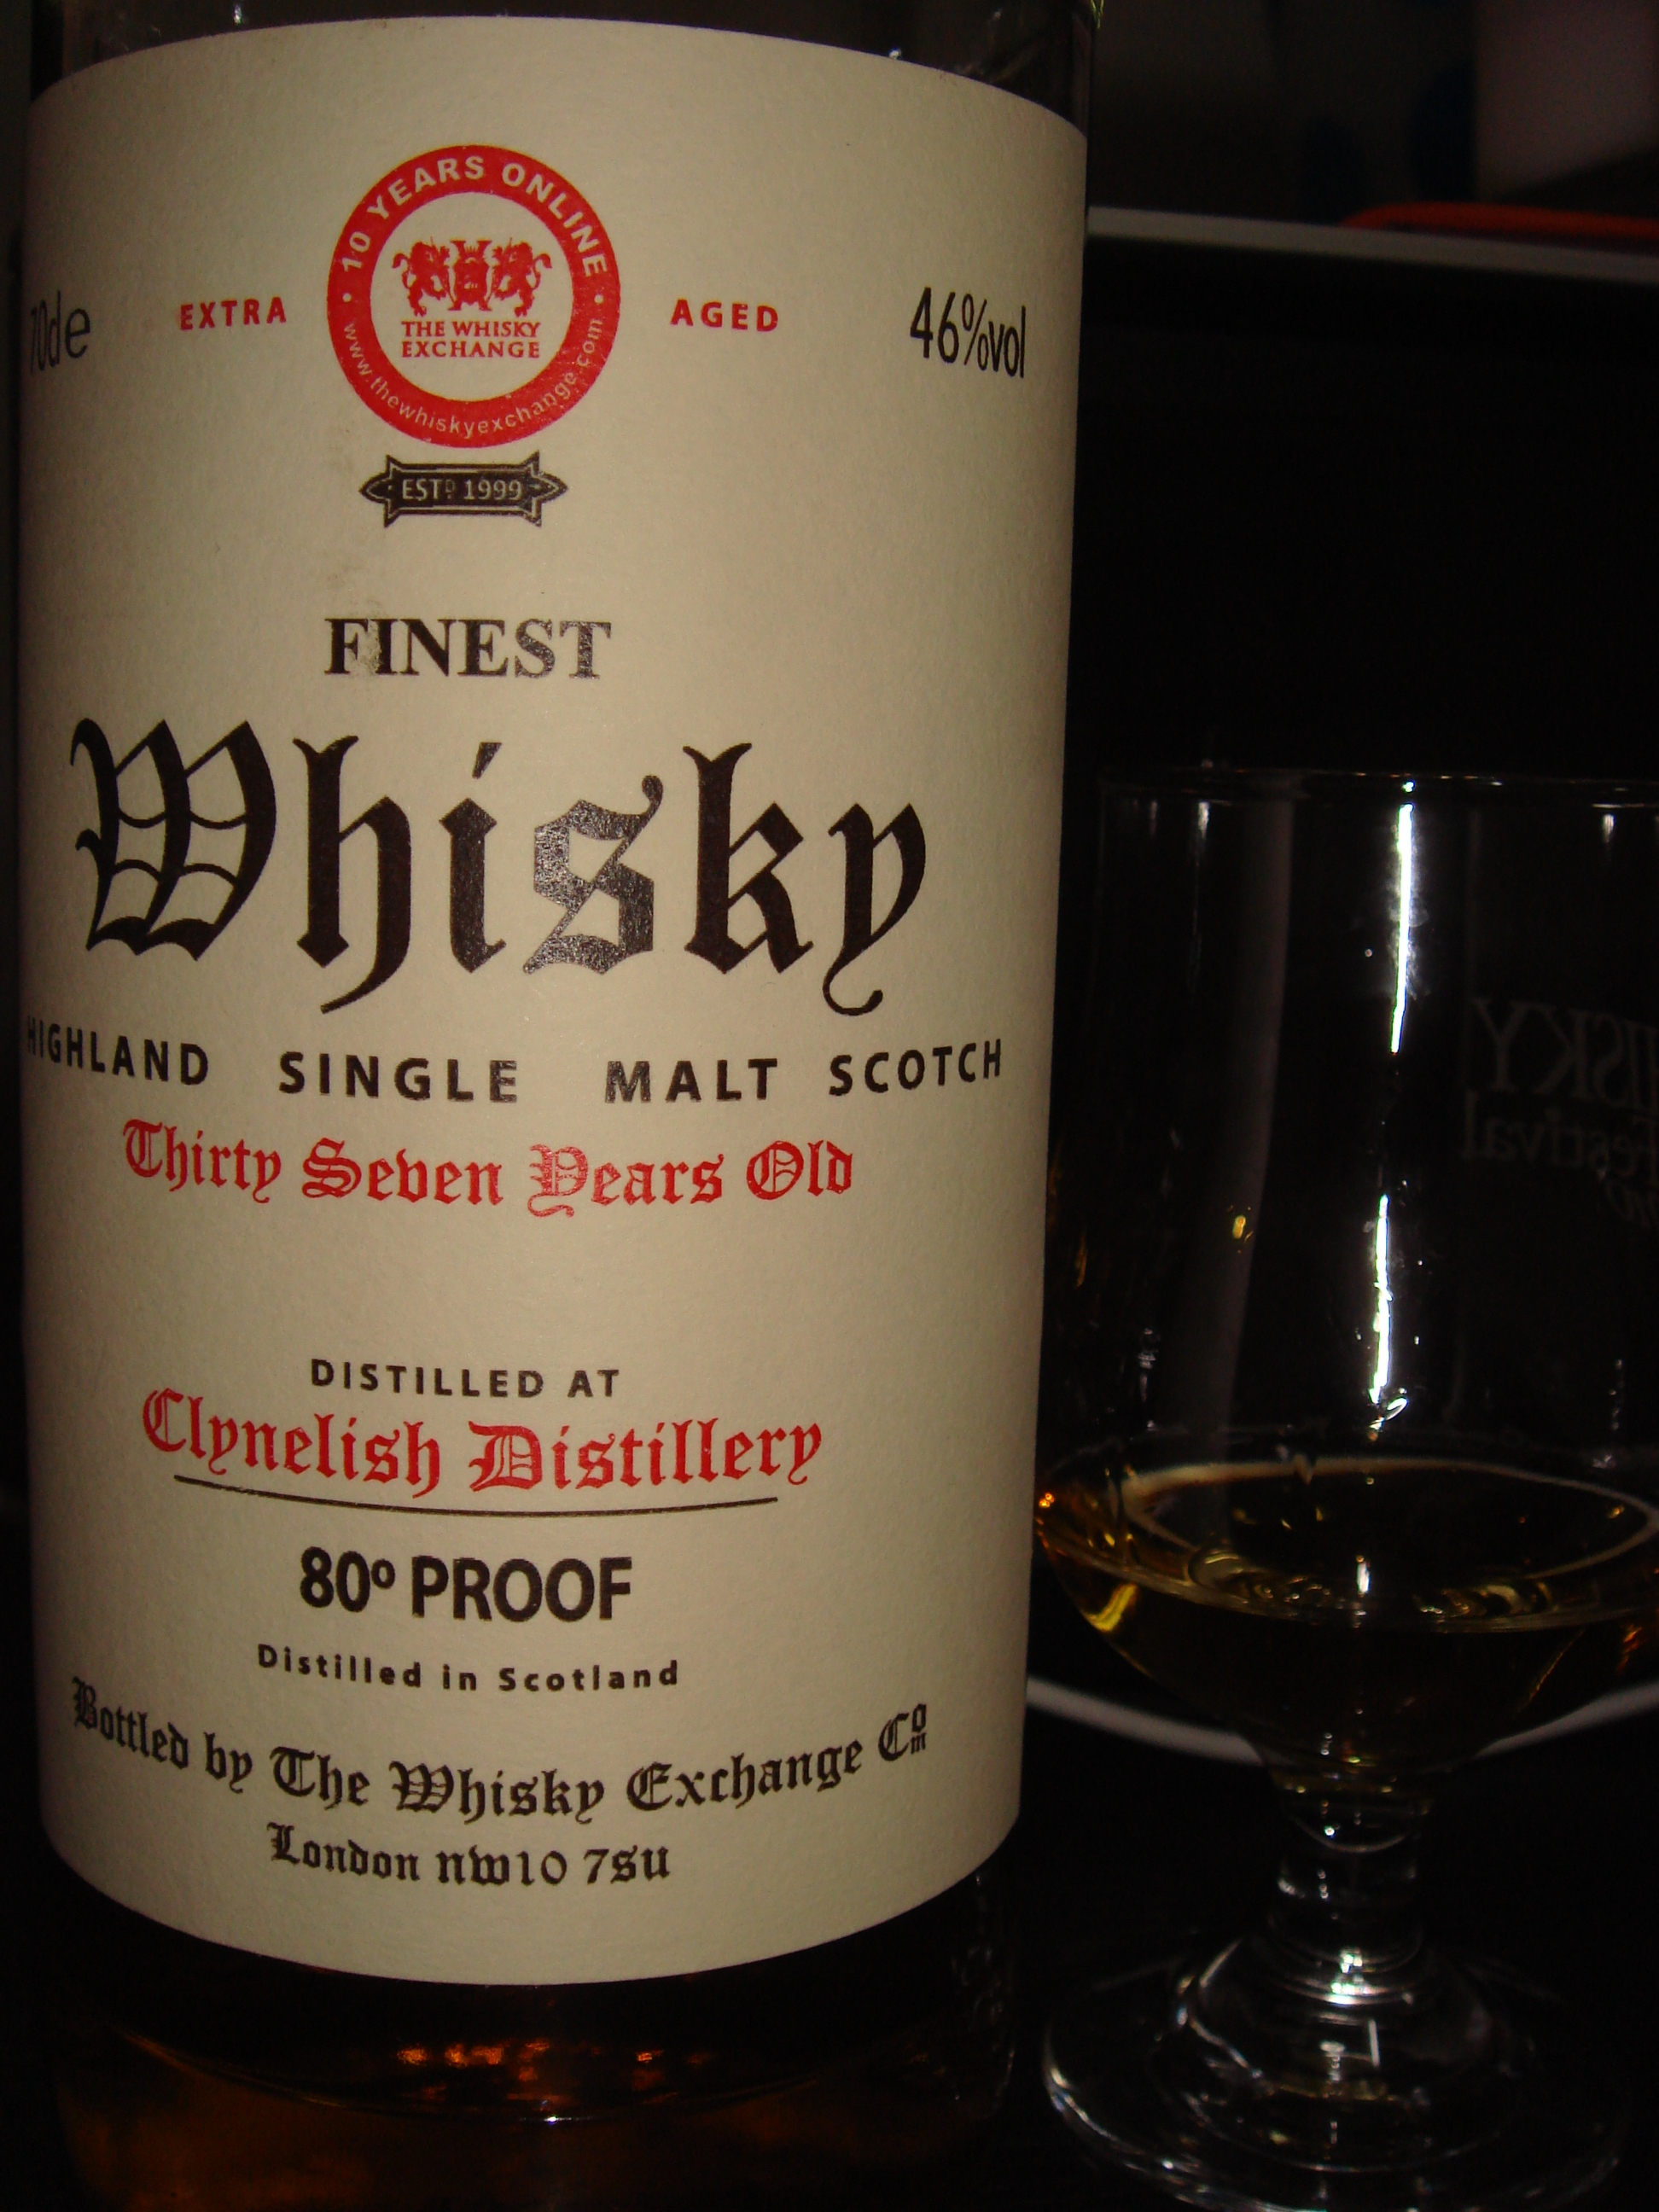 クライヌリッシュ / Clynelish 37年 The Whisky Exchange